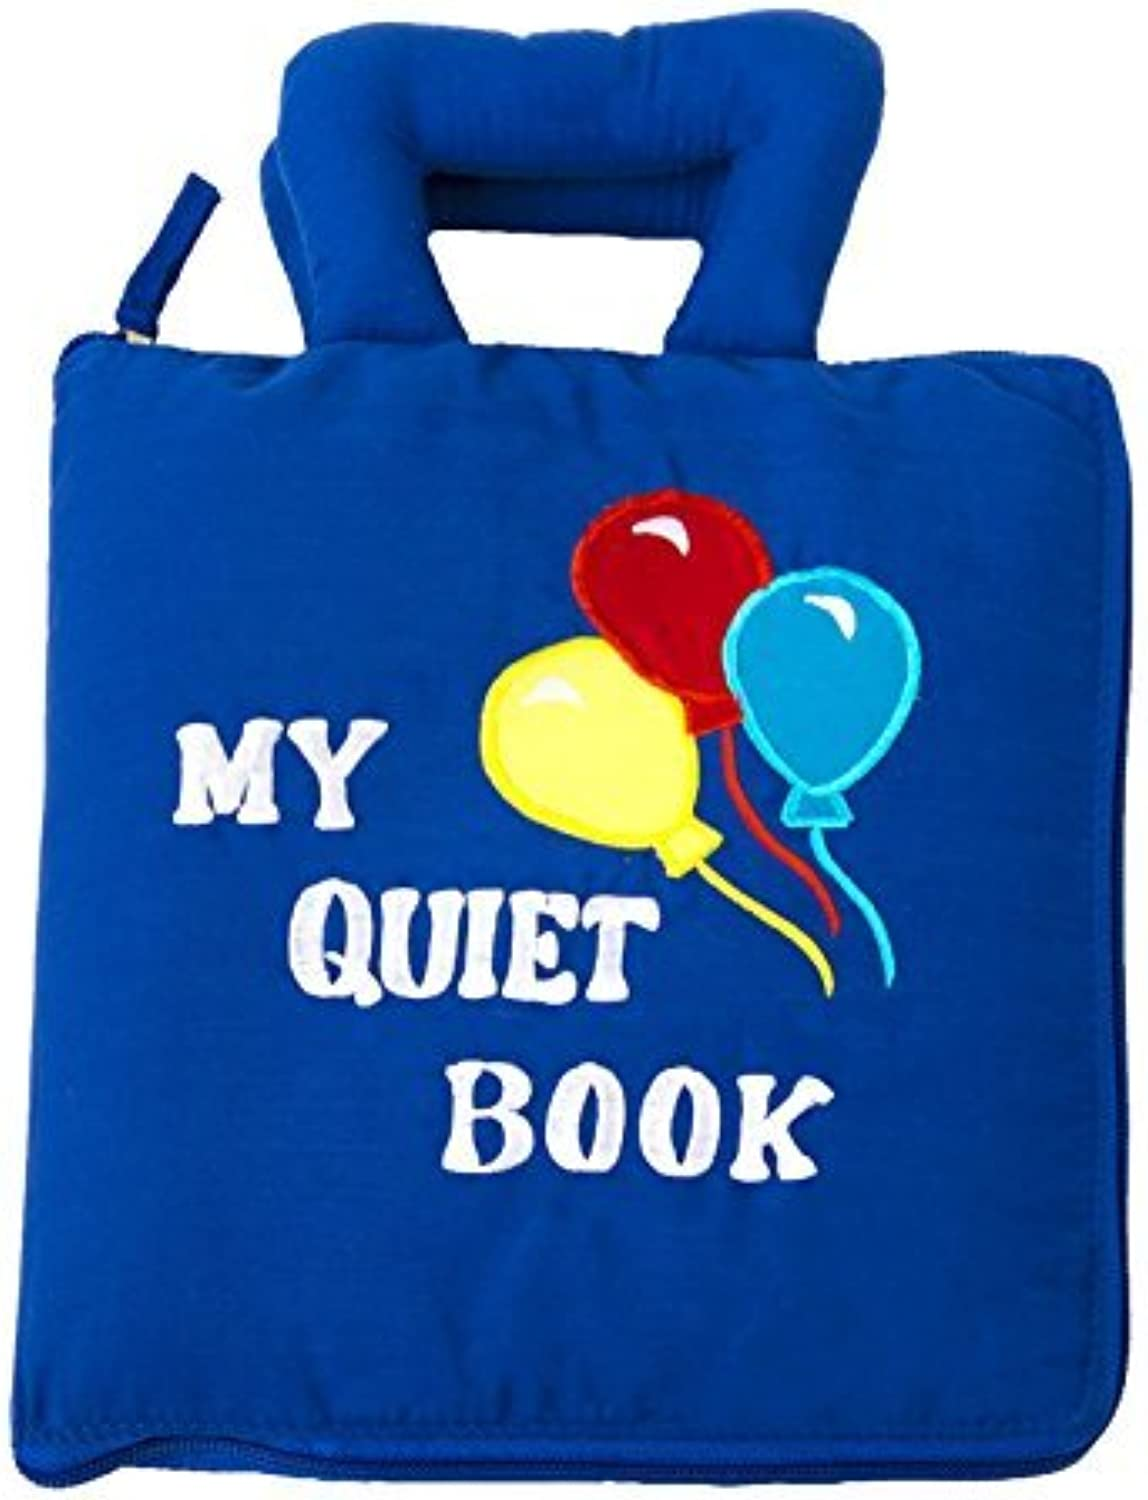 CP Toys Interactive Sensory Quiet Book - Features 8 Skill-Building Activities - Safe, Fun, and Educational For All Ages by Constructive Playthings